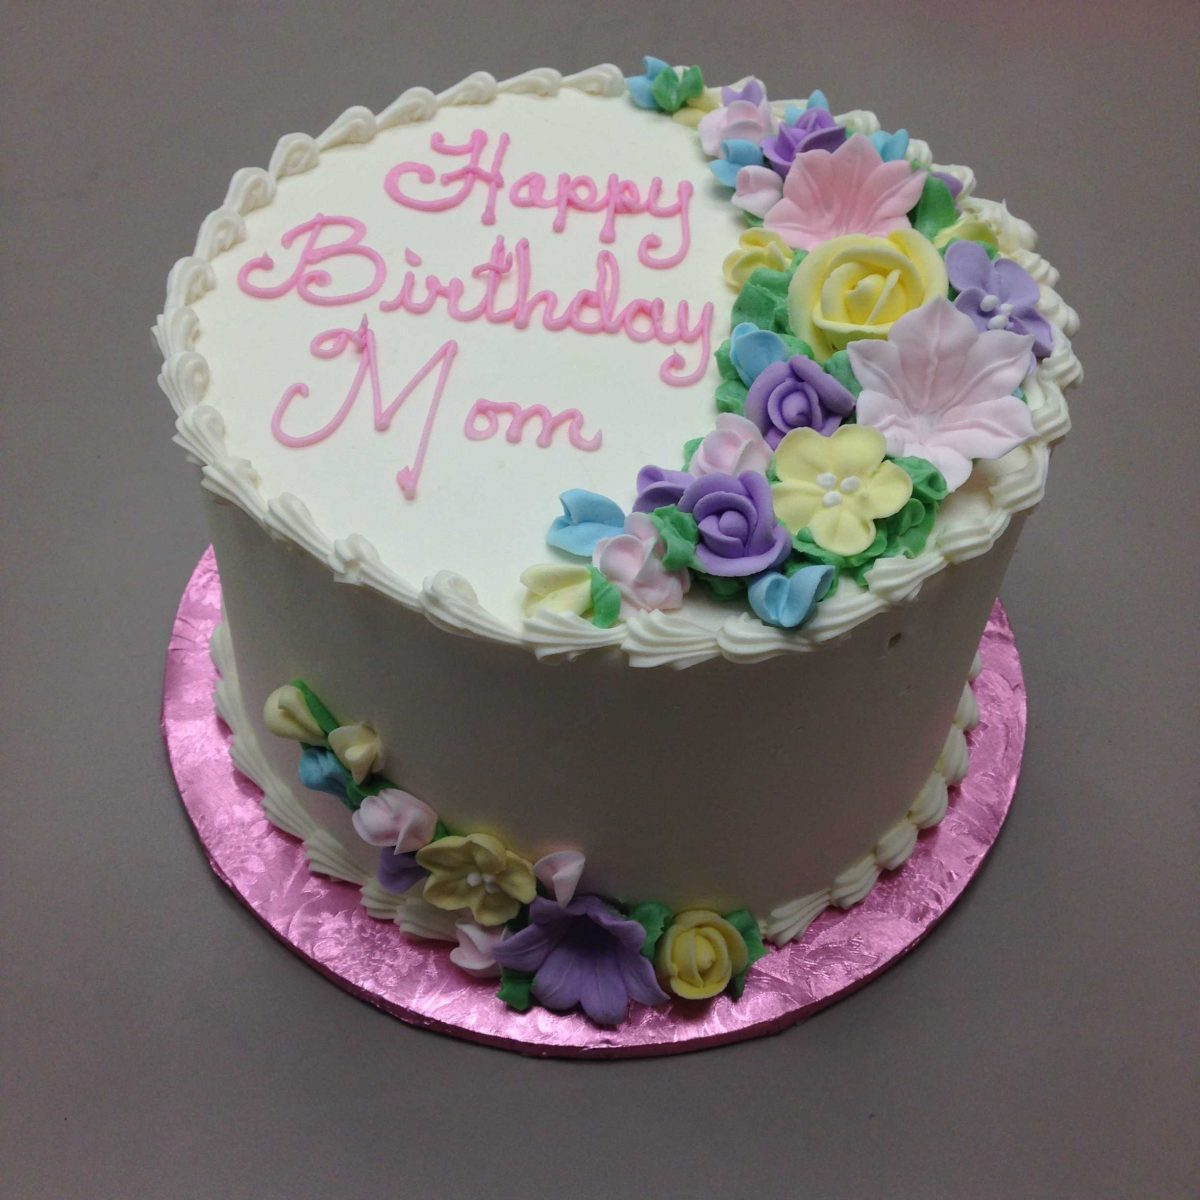 flowers on top of cake, flowers on side of cake